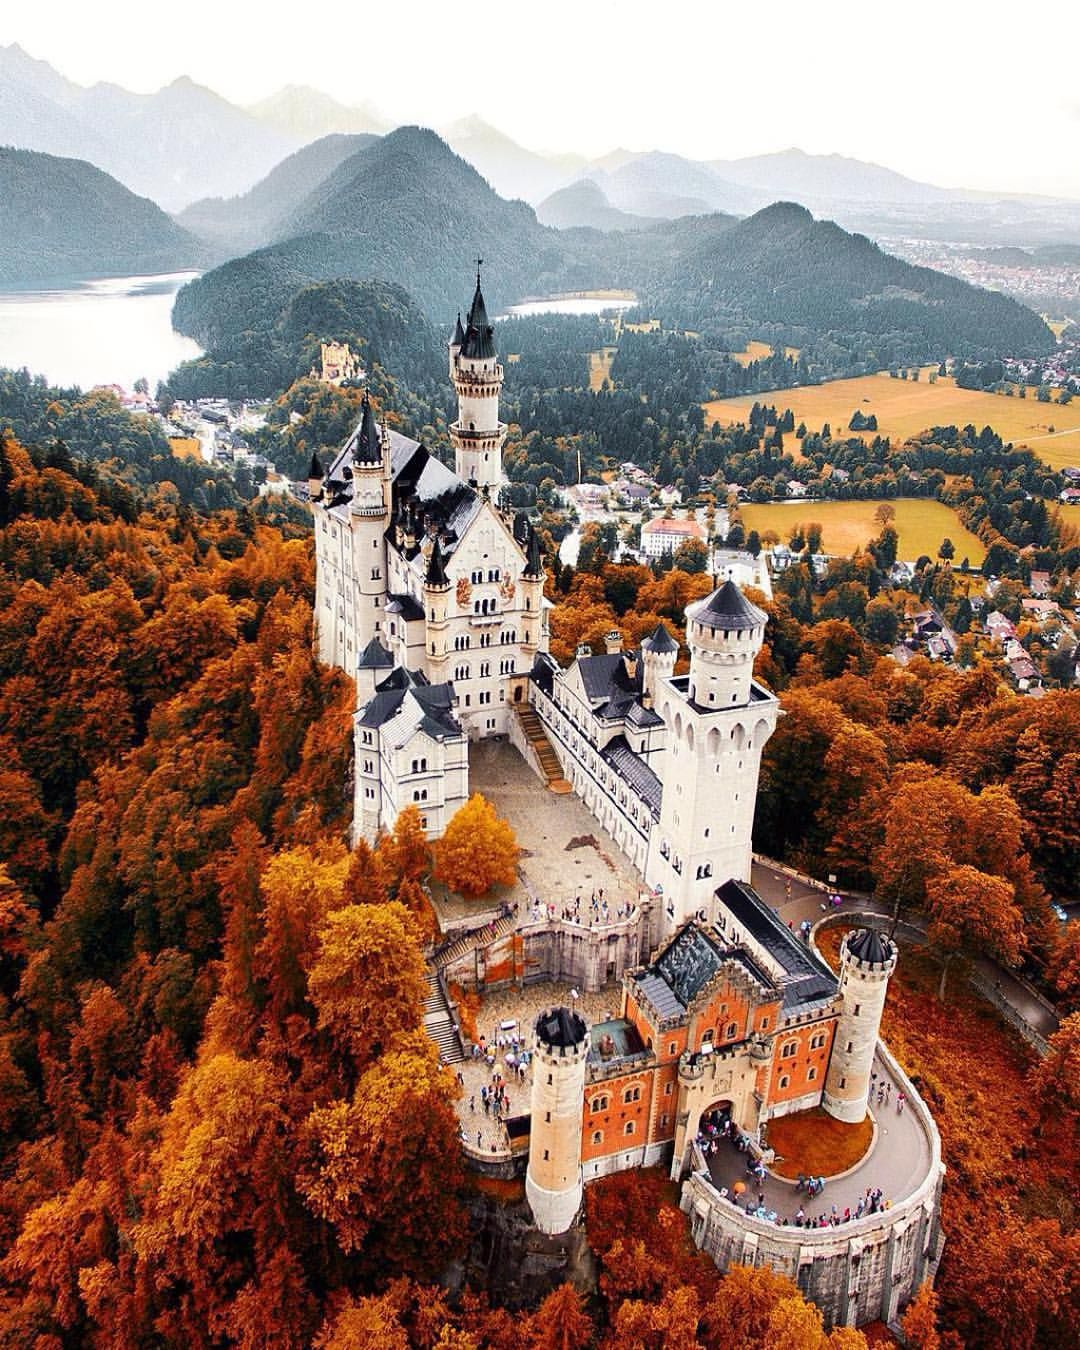 Earth Pics On Instagram Fall At Neuschwanstein Castle Germany Photo By Jacob Neuschwanstein Castle Places To Travel Germany Castles